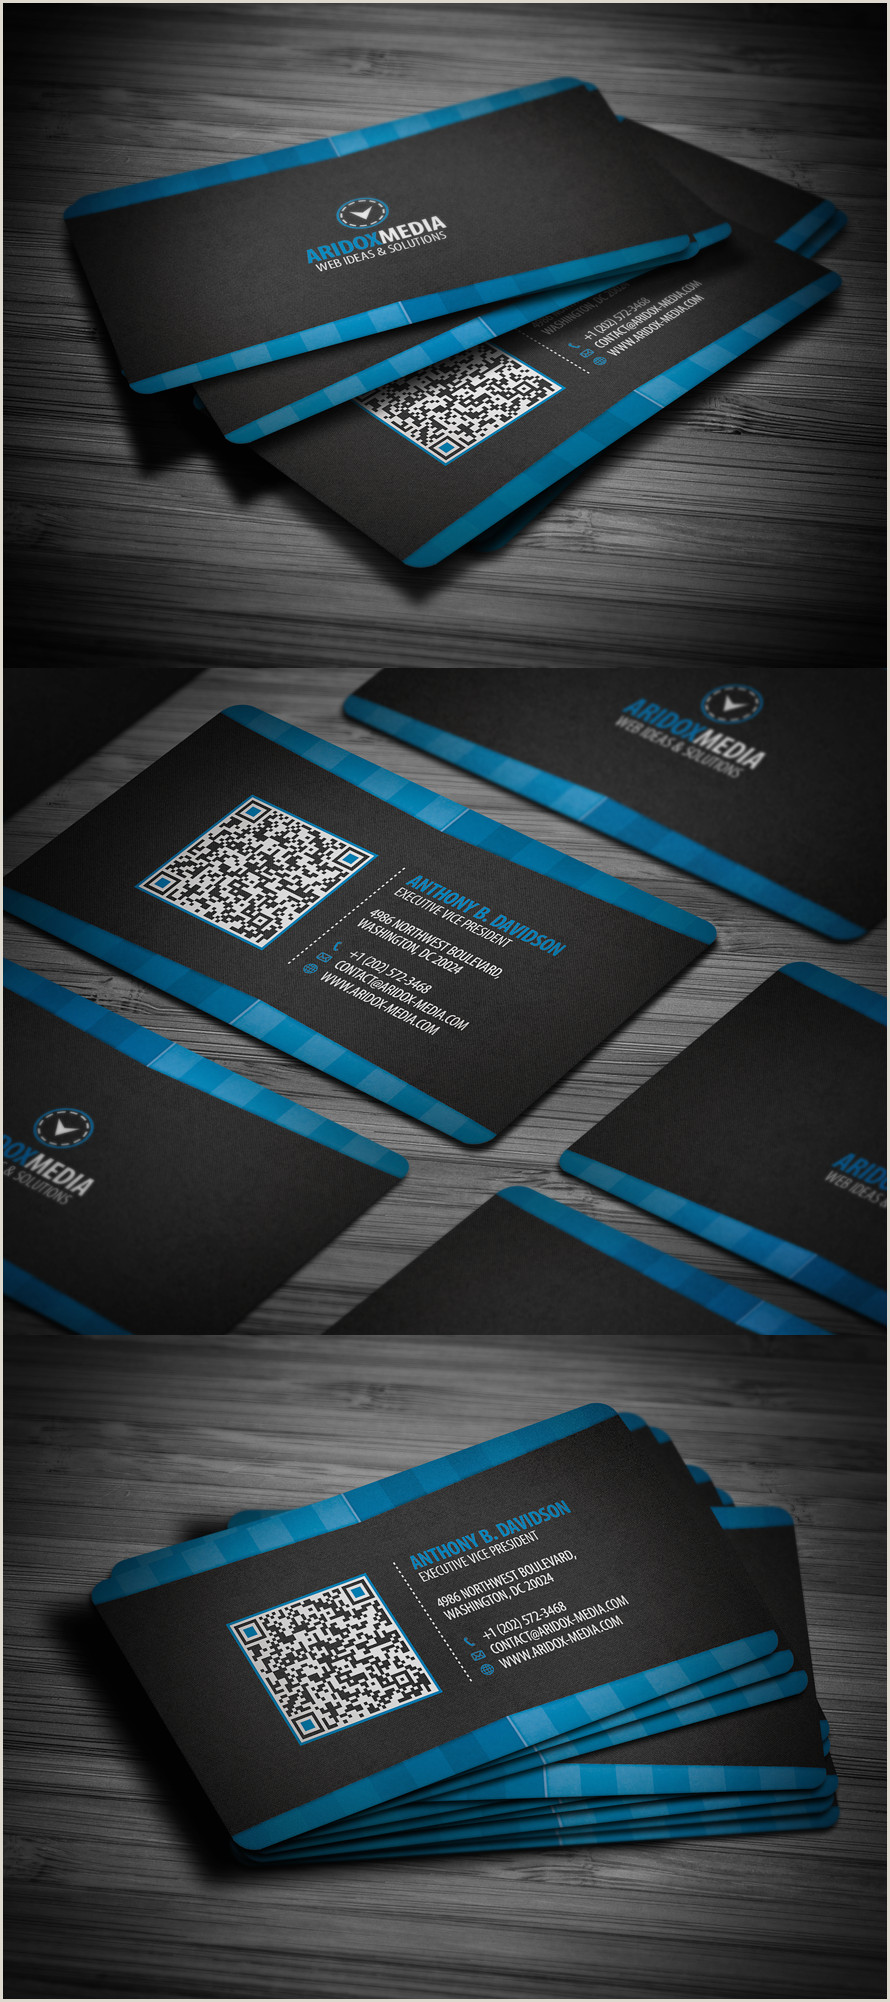 Best Place To Buy Business Cards Professional Corporate Business Card By Flowpixel On